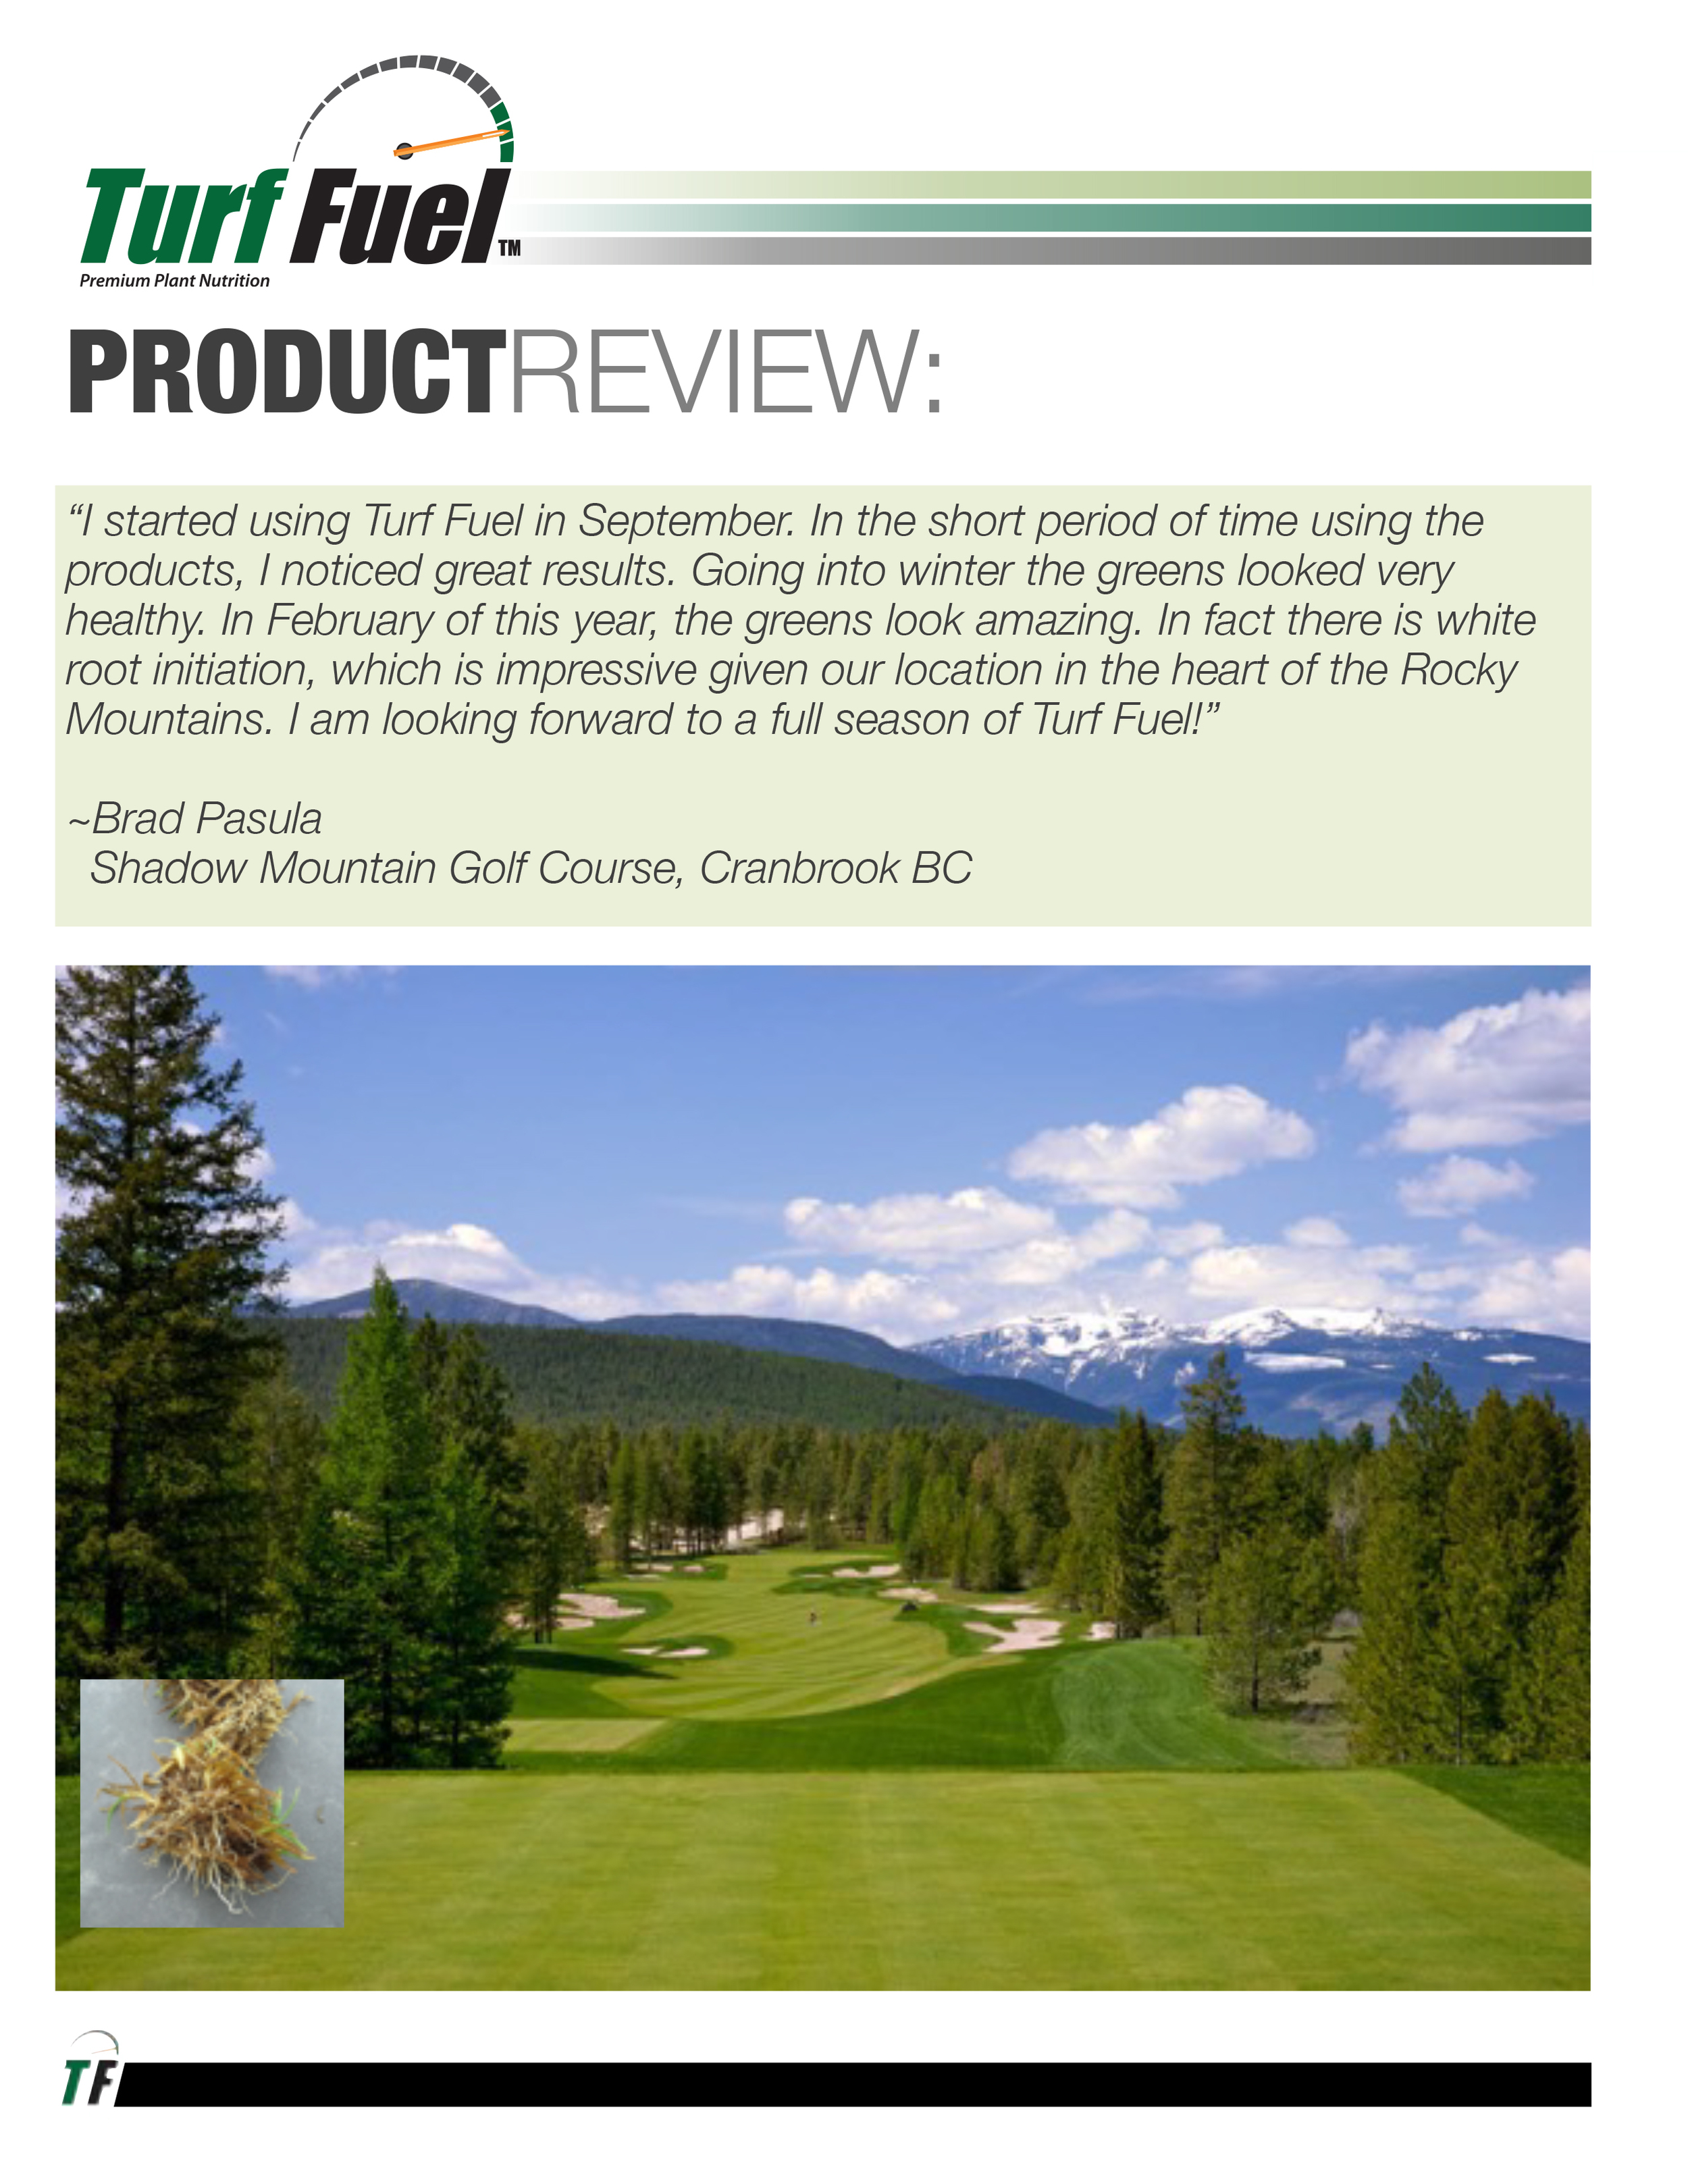 PRODUCT REVIEW Shadow Mountain GC